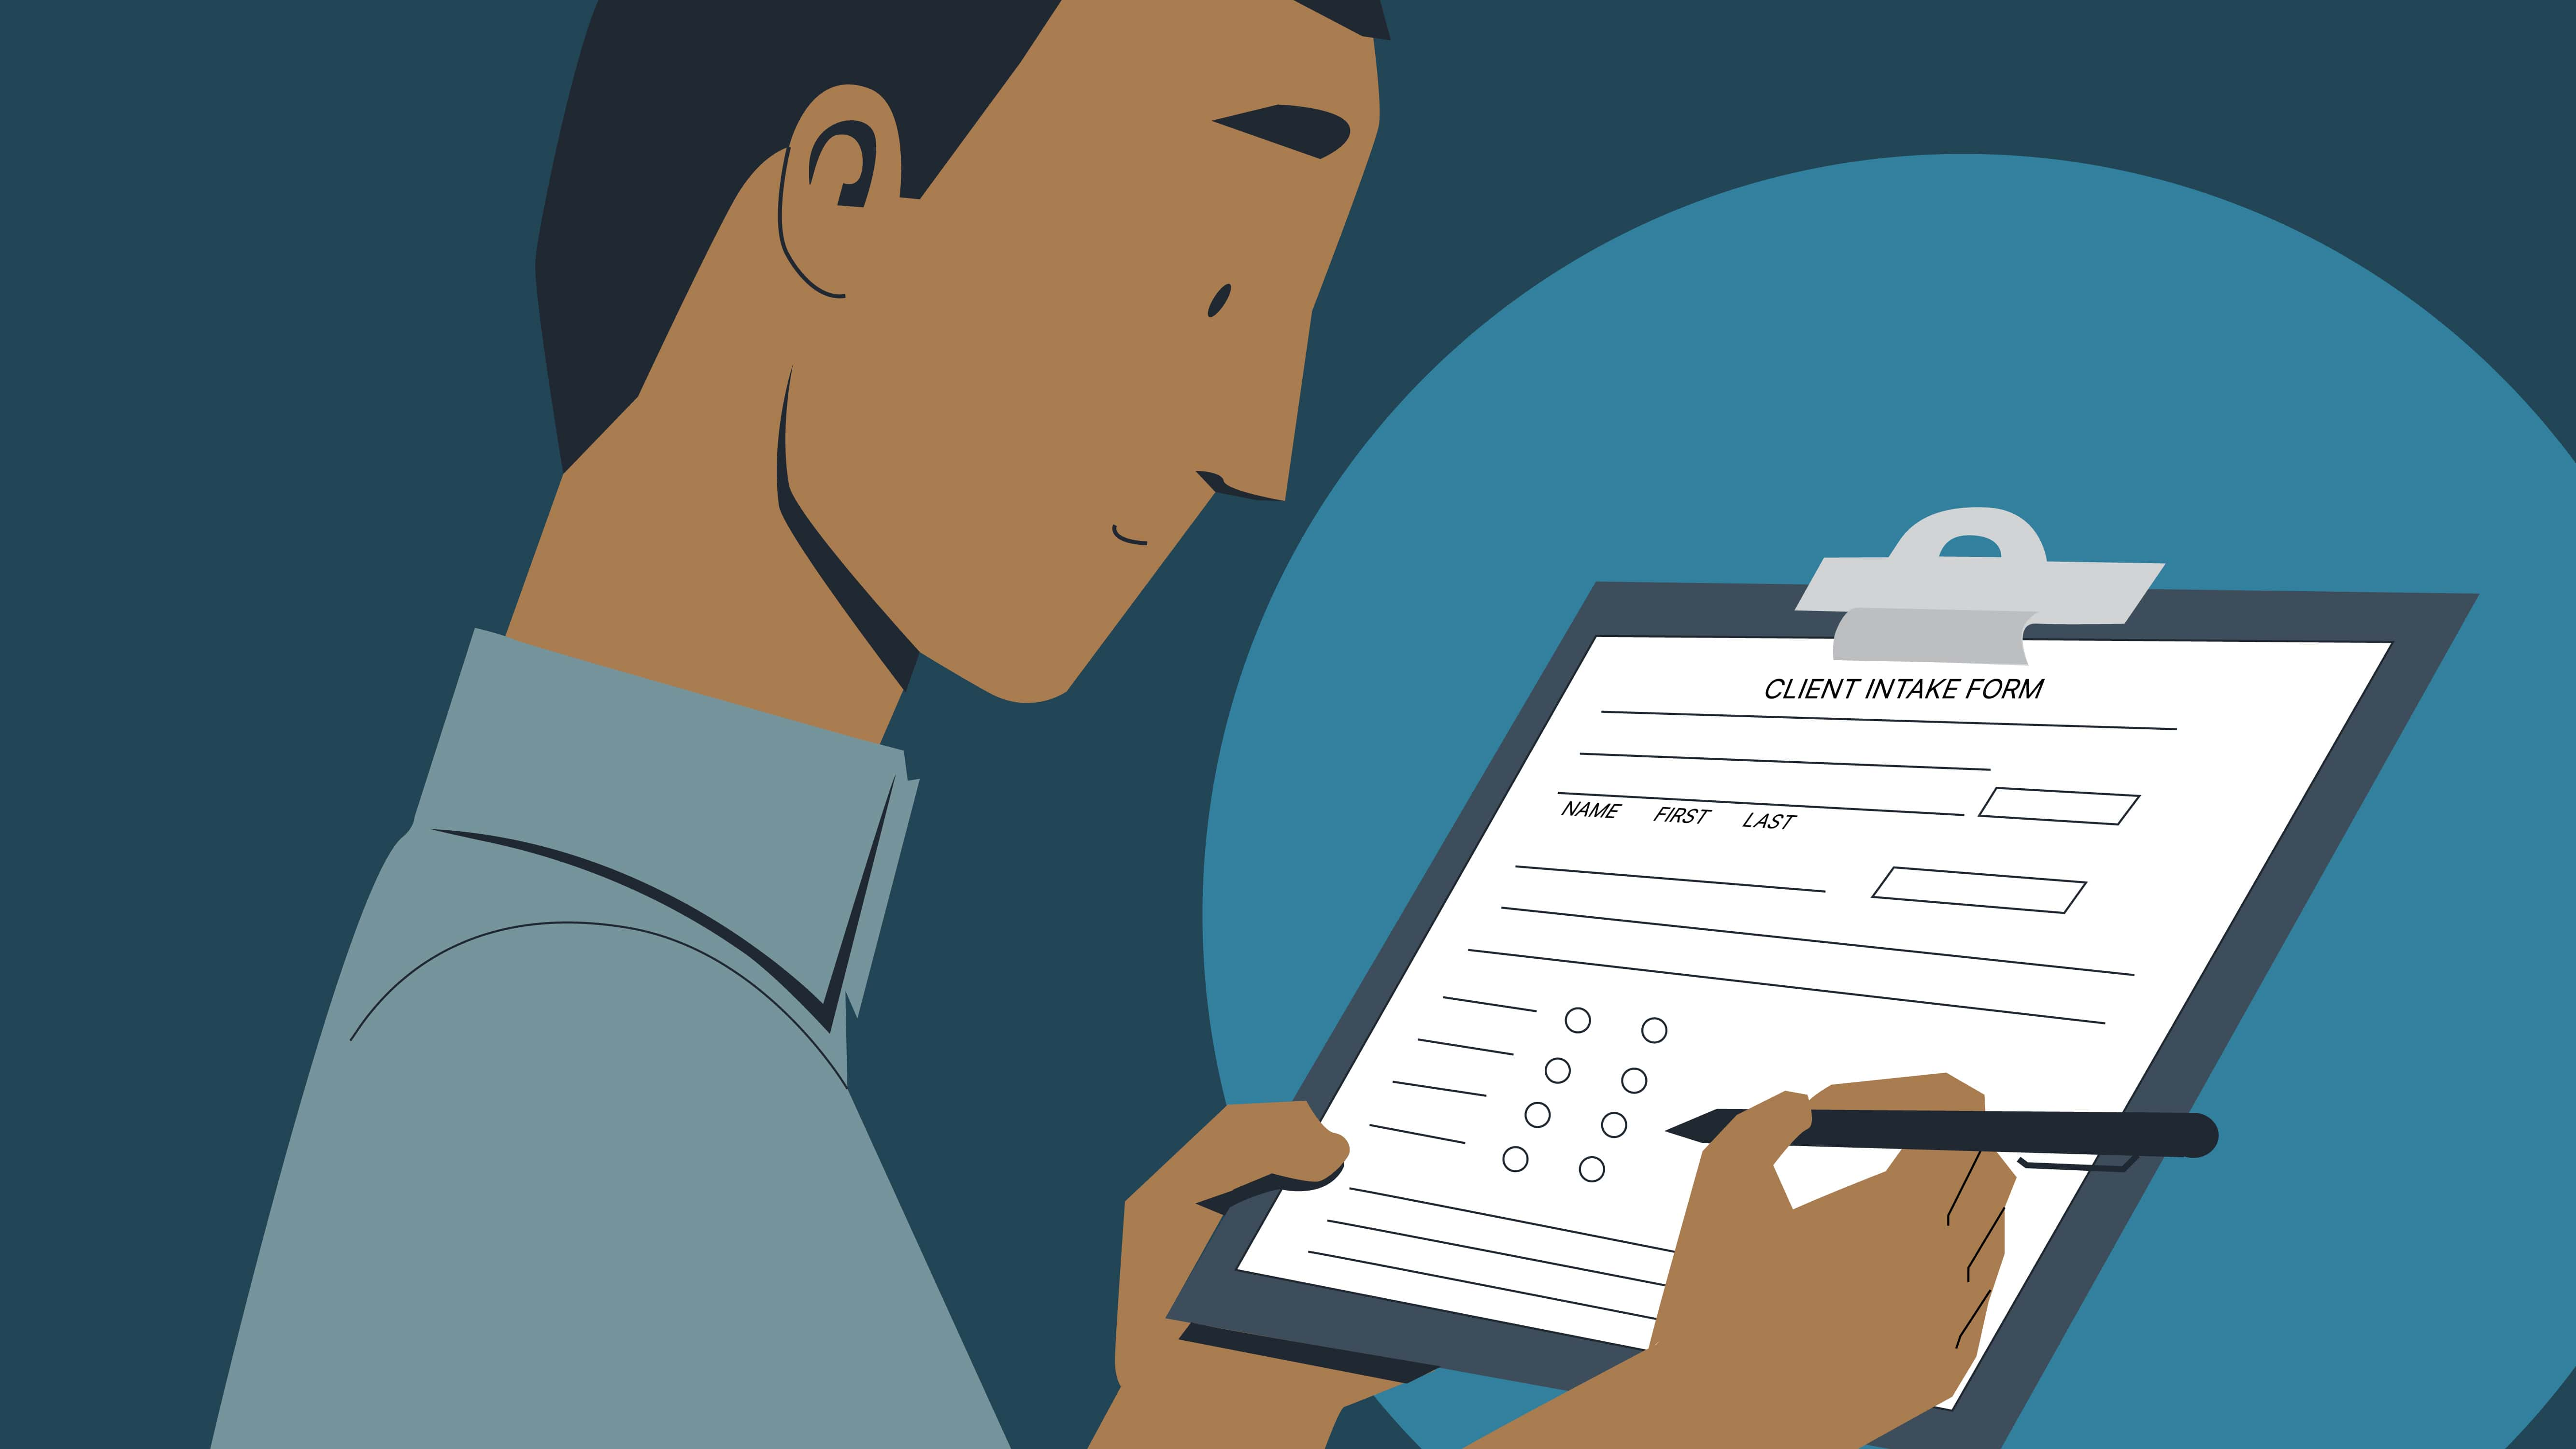 Client intake form benefits and best practices